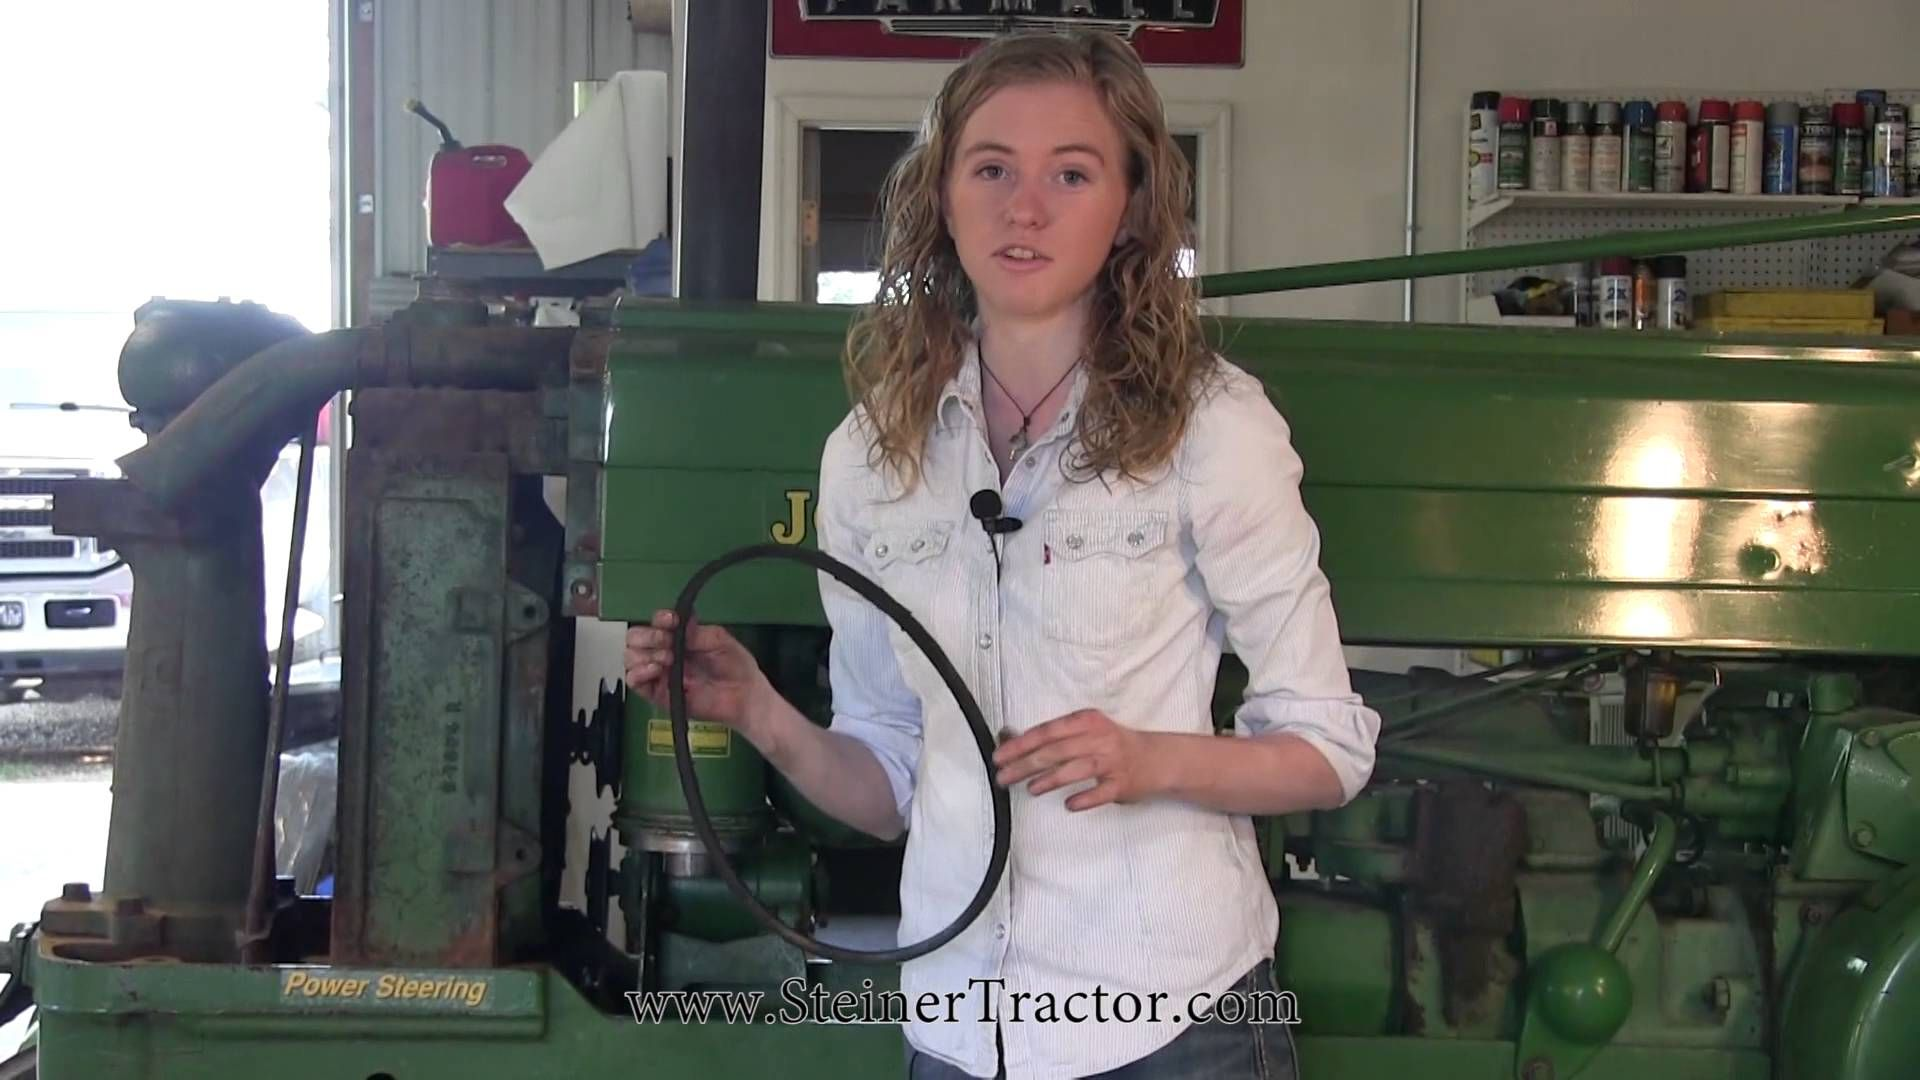 WATER PUMP REPLACEMENT - Learn how to replace a water pump on a ...